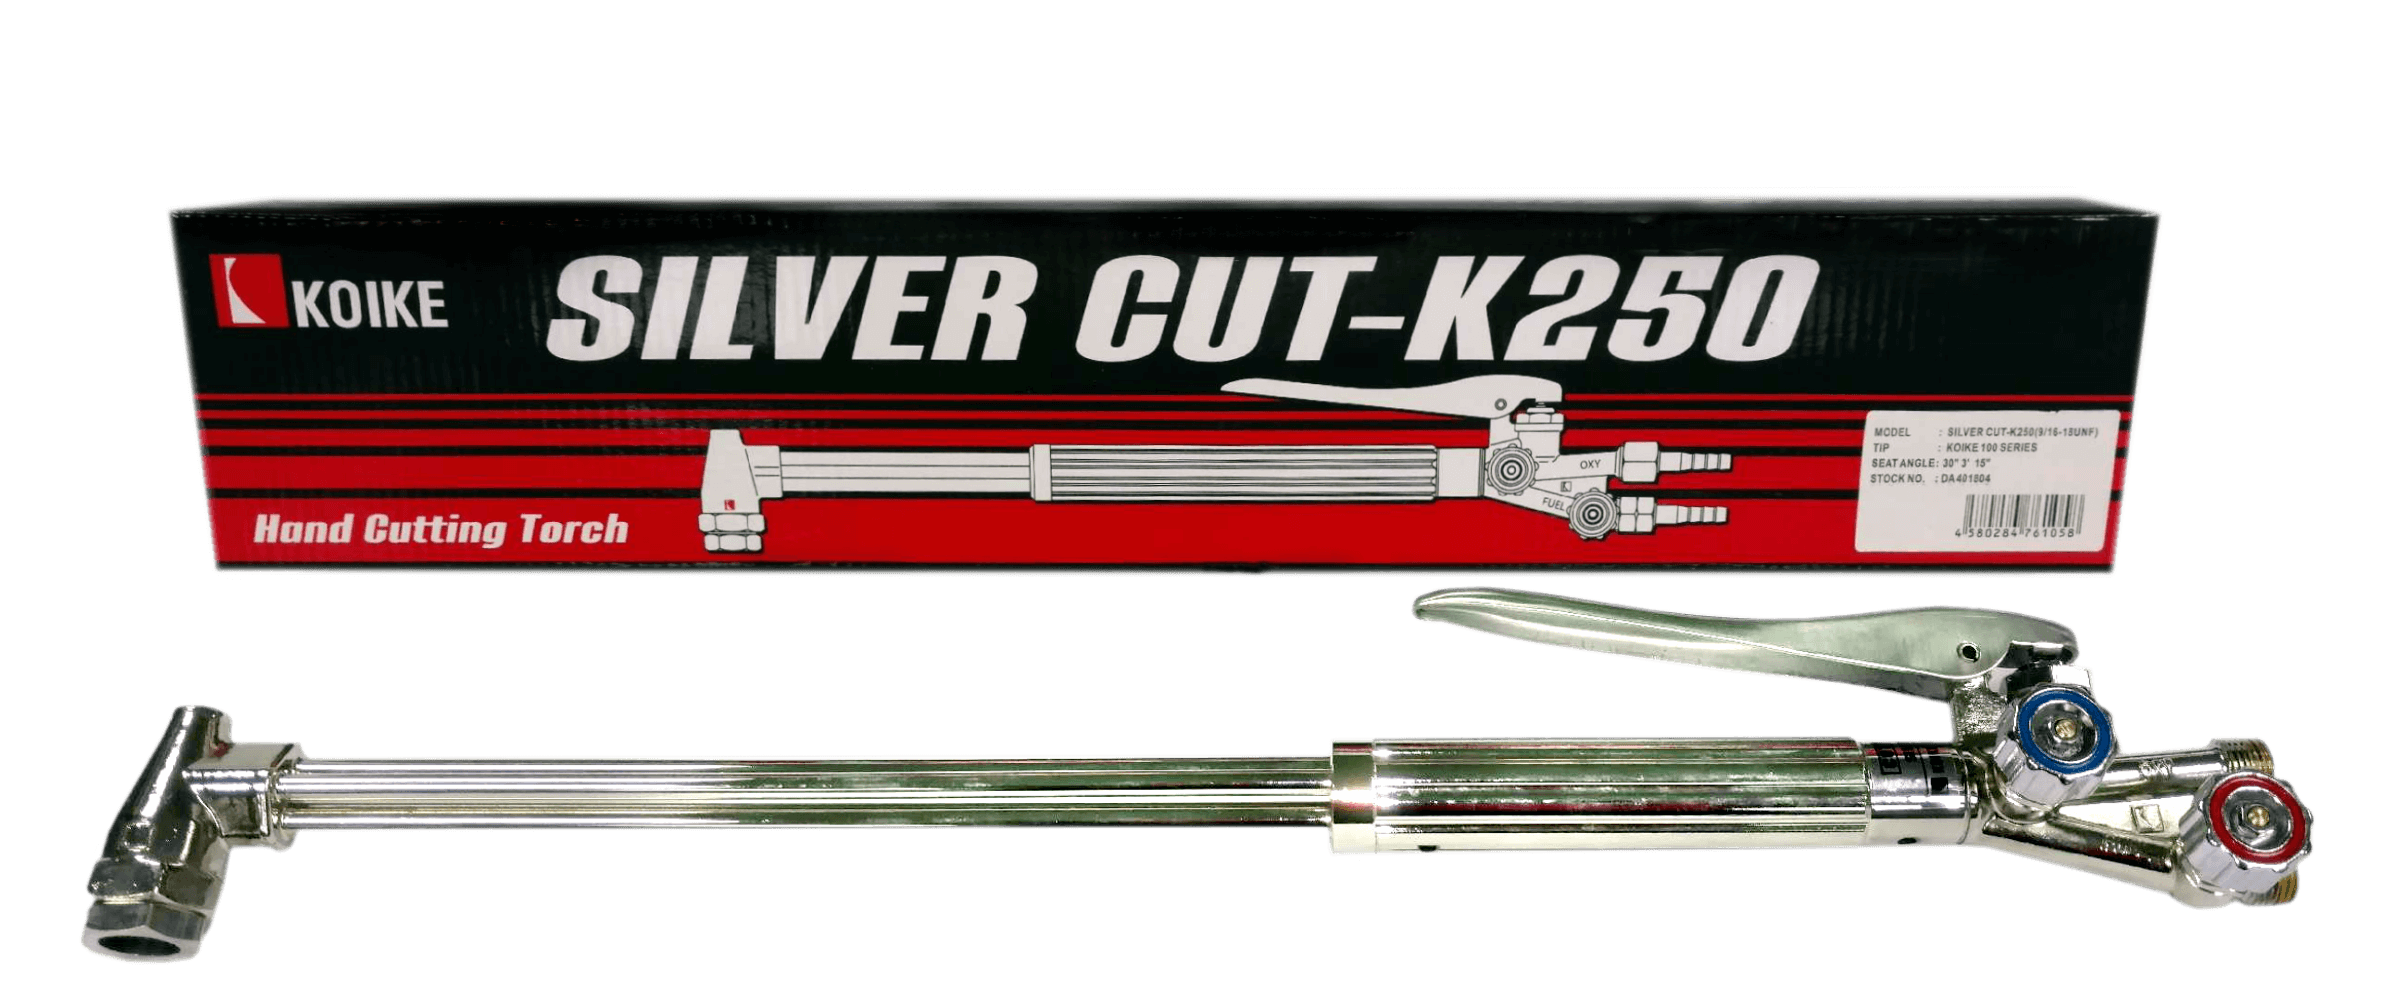 Free SilverCut250 with your next ShopPro purchase...just mention Jim Colt